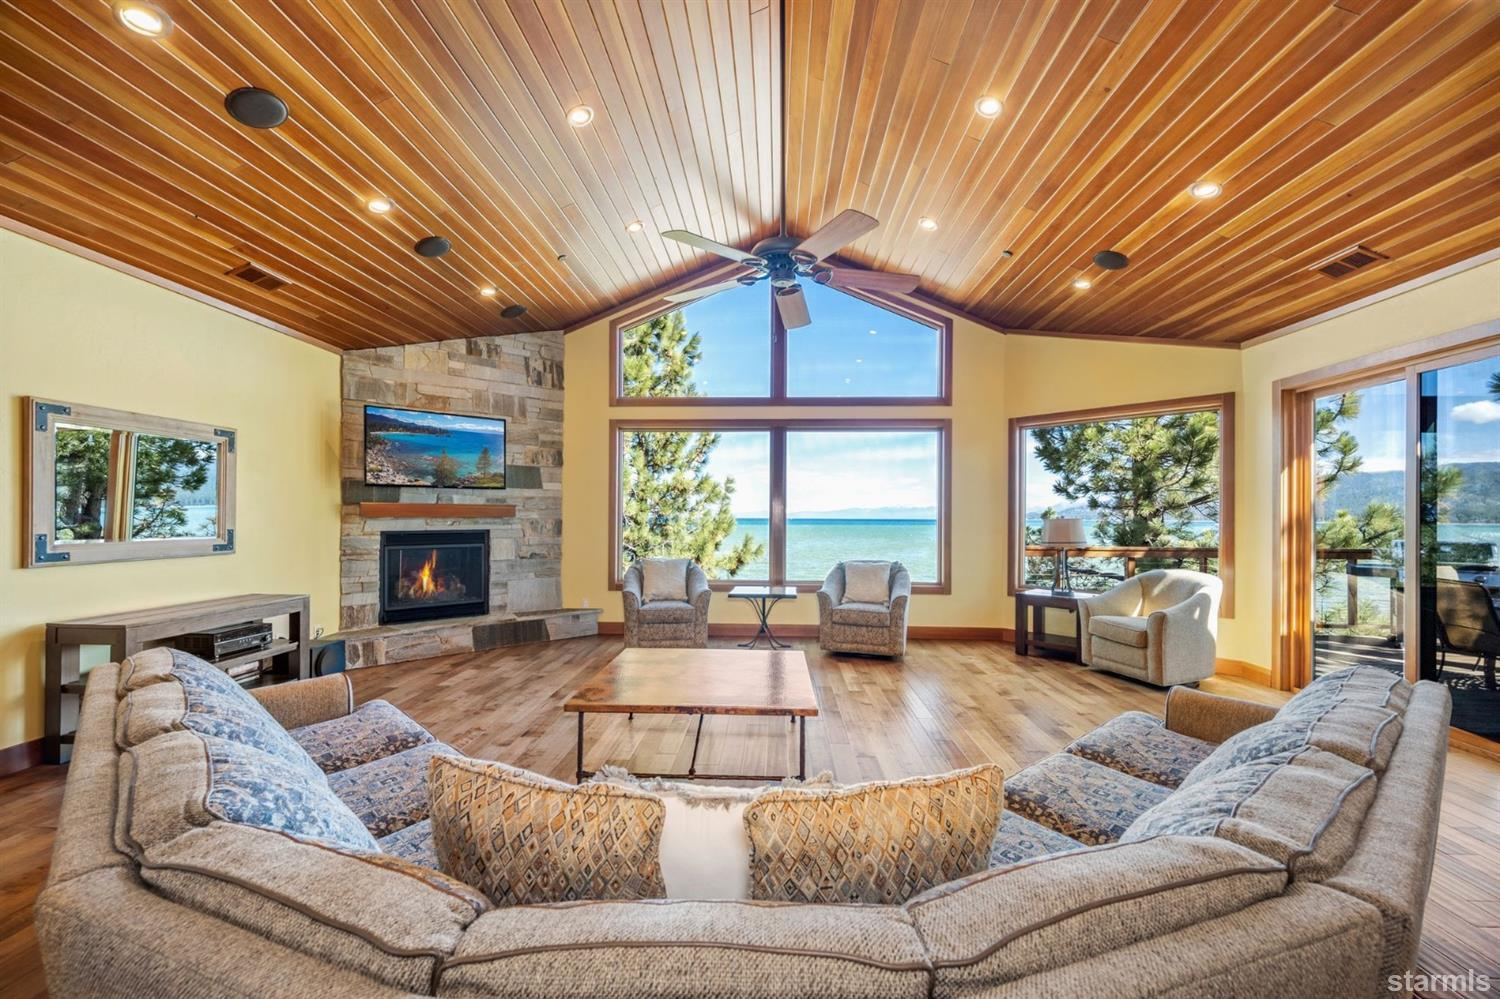 Image for 950 Balbijou Road, South Lake Tahoe, CA 96150